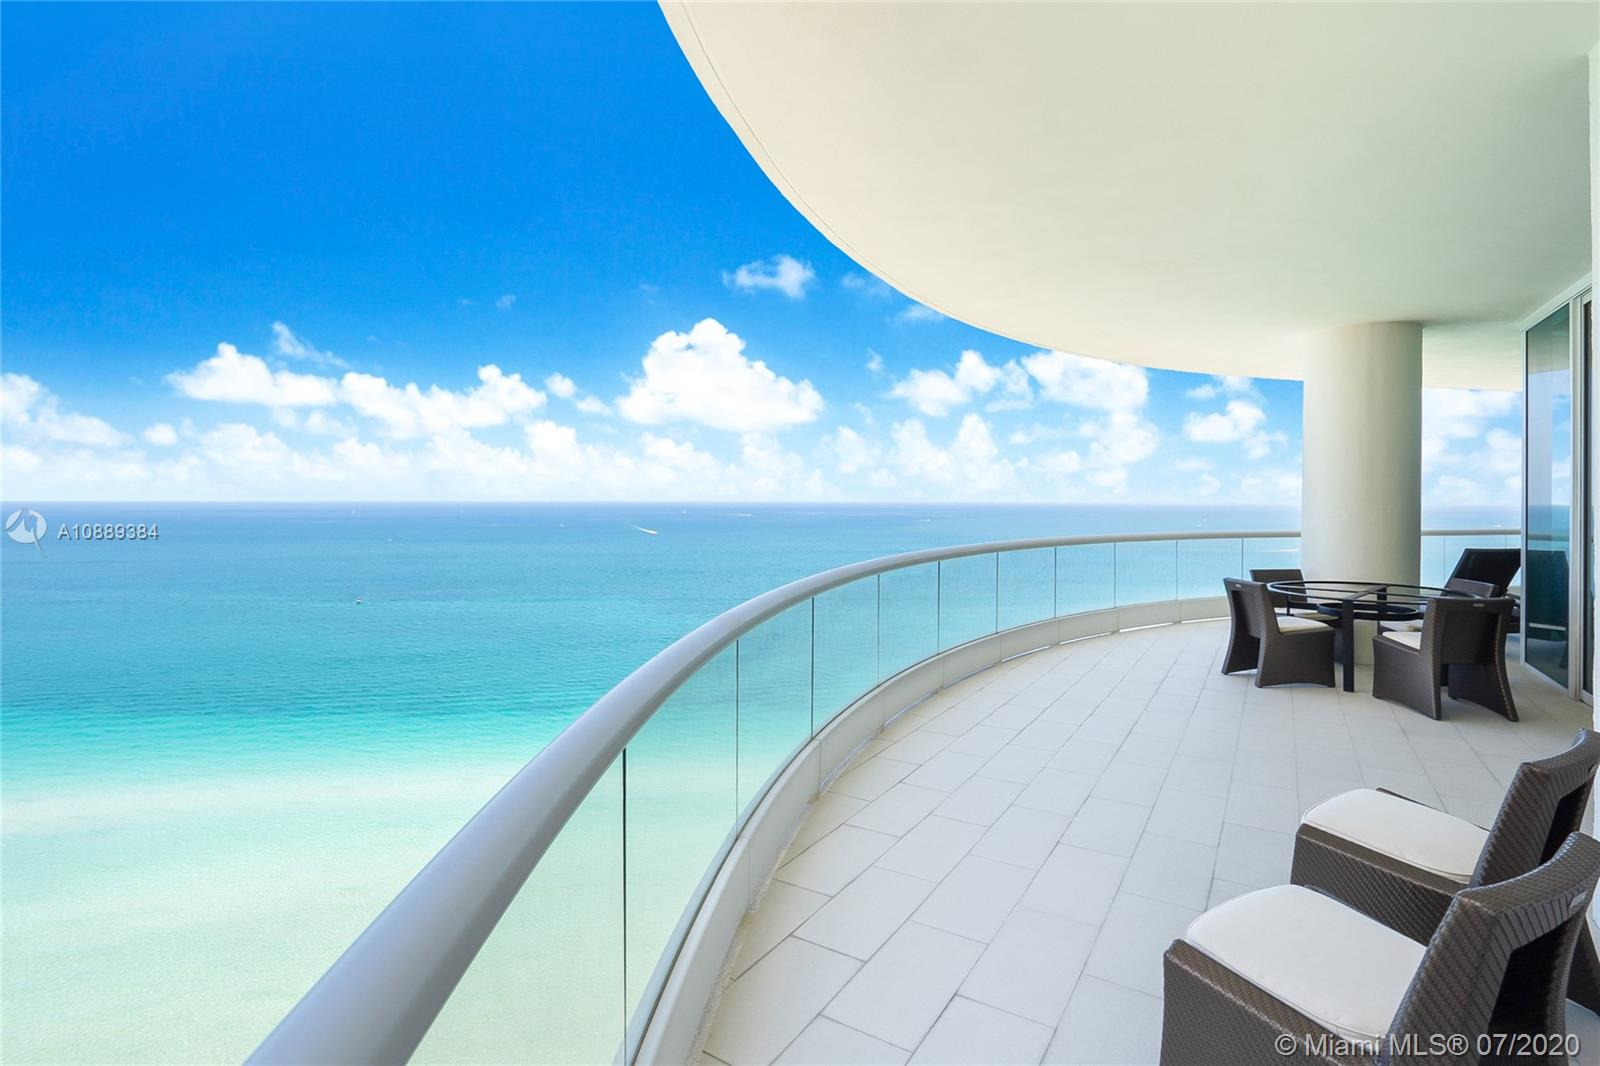 """Spectacular corner unit at the most elegant Turnberry Ocean Colony in Sunny Isles Beach. Panoramic views of the ocean, city, and Intracoastal. 4 Bedrooms, 5 Bathrooms plus media room and staff quarters. Private elevator. Professionally decorated, 10"""" ceilings, marble floors (living room, dining room area, and wet bar), carpet in bedrooms, and master bedroom facing the Ocean. Kitchen with top of the line Gaggenau and Subzero appliances and Sanidero Cabinets. Luxury lifestyle with a private club, 2 restaurants, fitness center, spa, beauty salon, sauna, jacuzzi, 2 pools, full-service private beach club, children playroom, billiard room, bar, lounge, business center, concierge, and 24 hrs. security. Ready to move in, easy to show."""